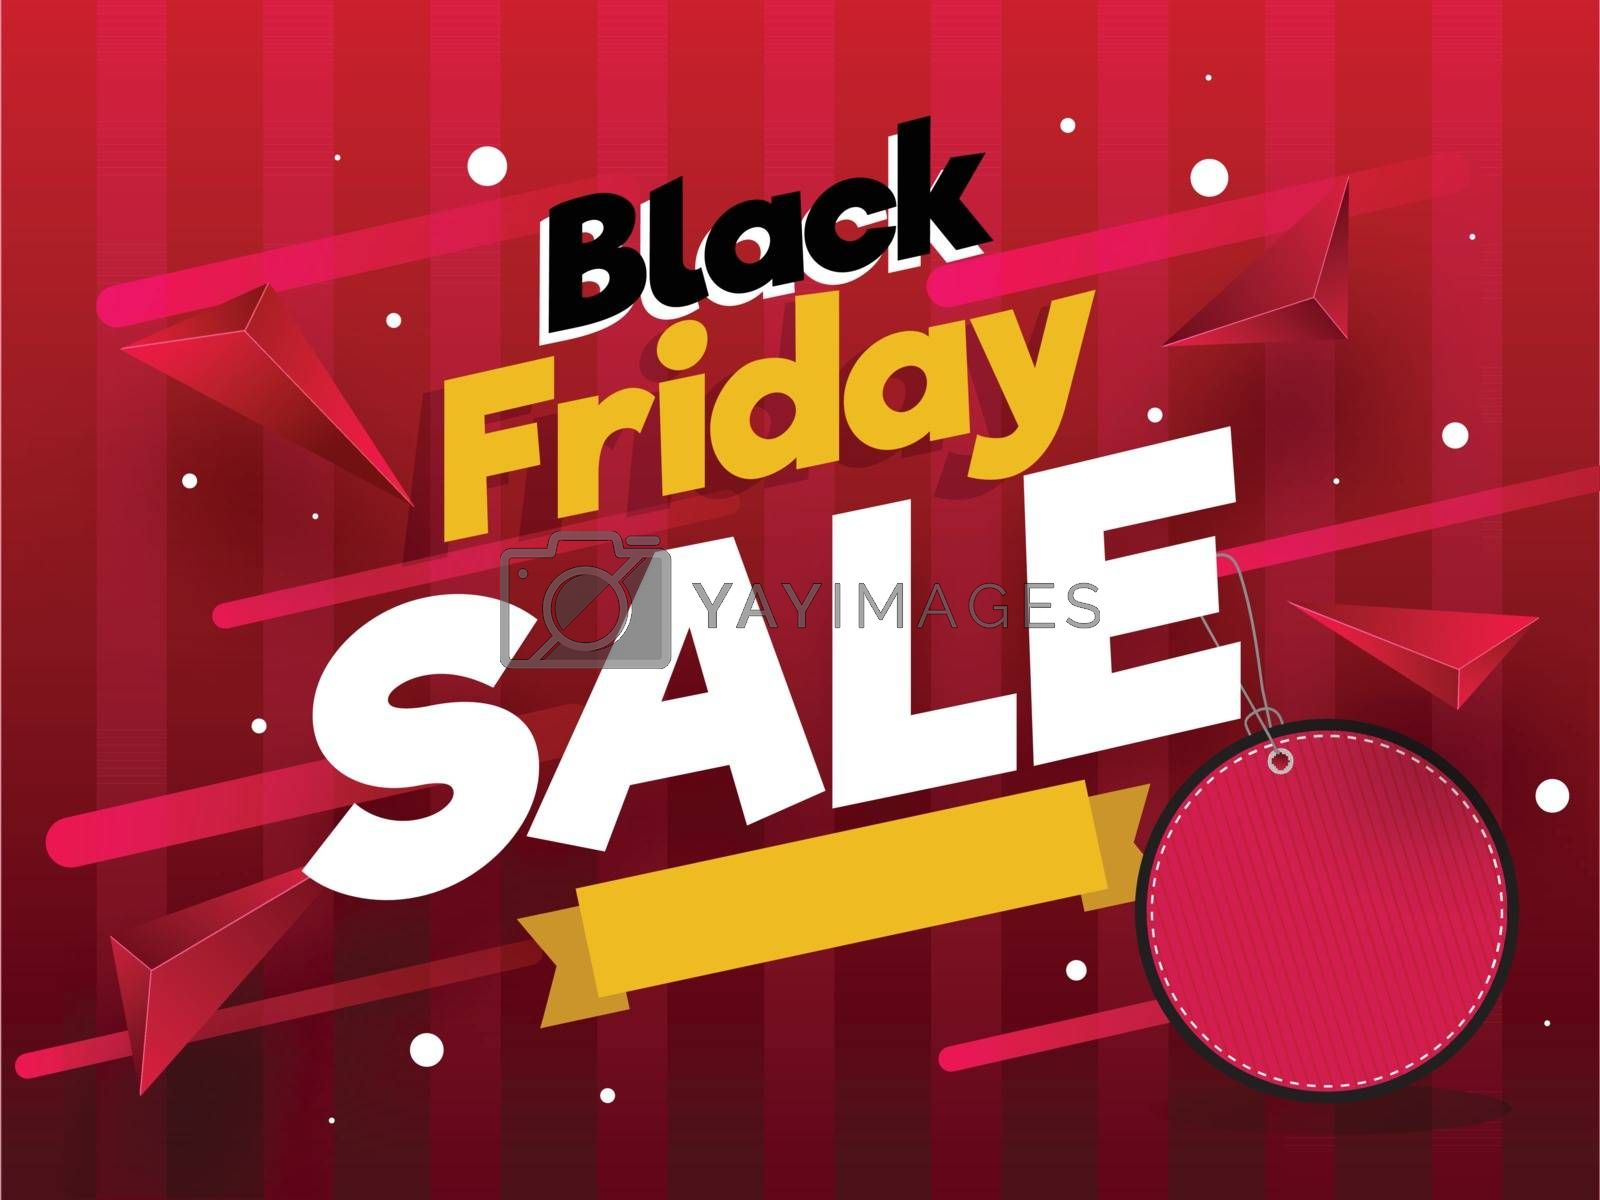 Black Friday Sale poster design with blank tag and abstract elements on red background.